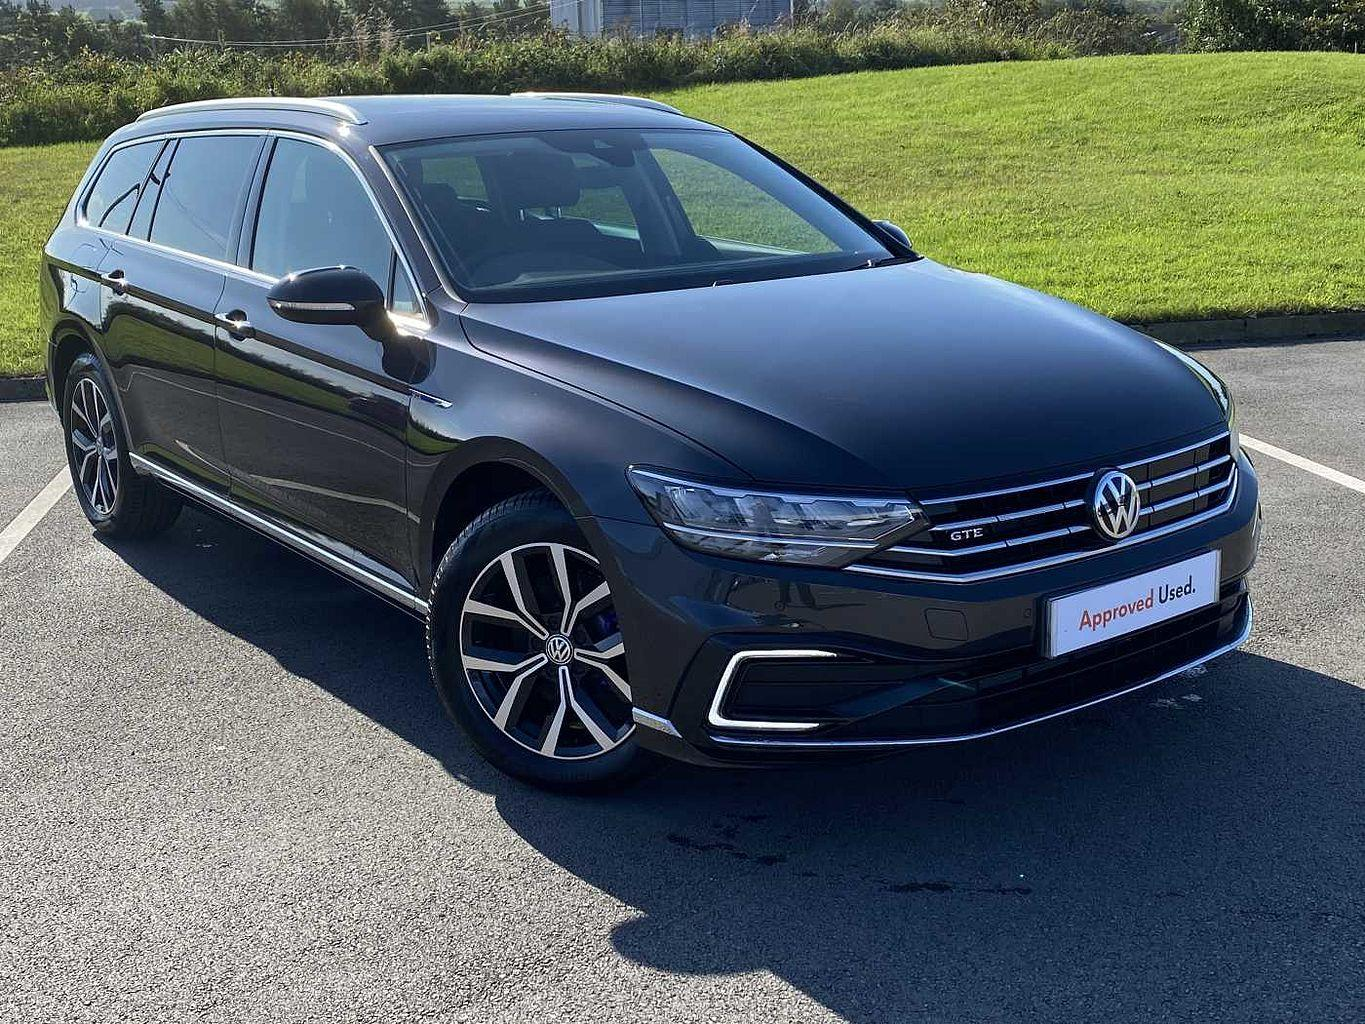 Volkswagen Passat Estate 1.4 TSI (218ps) GTE DSG Estate Hybrid Manganese Grey